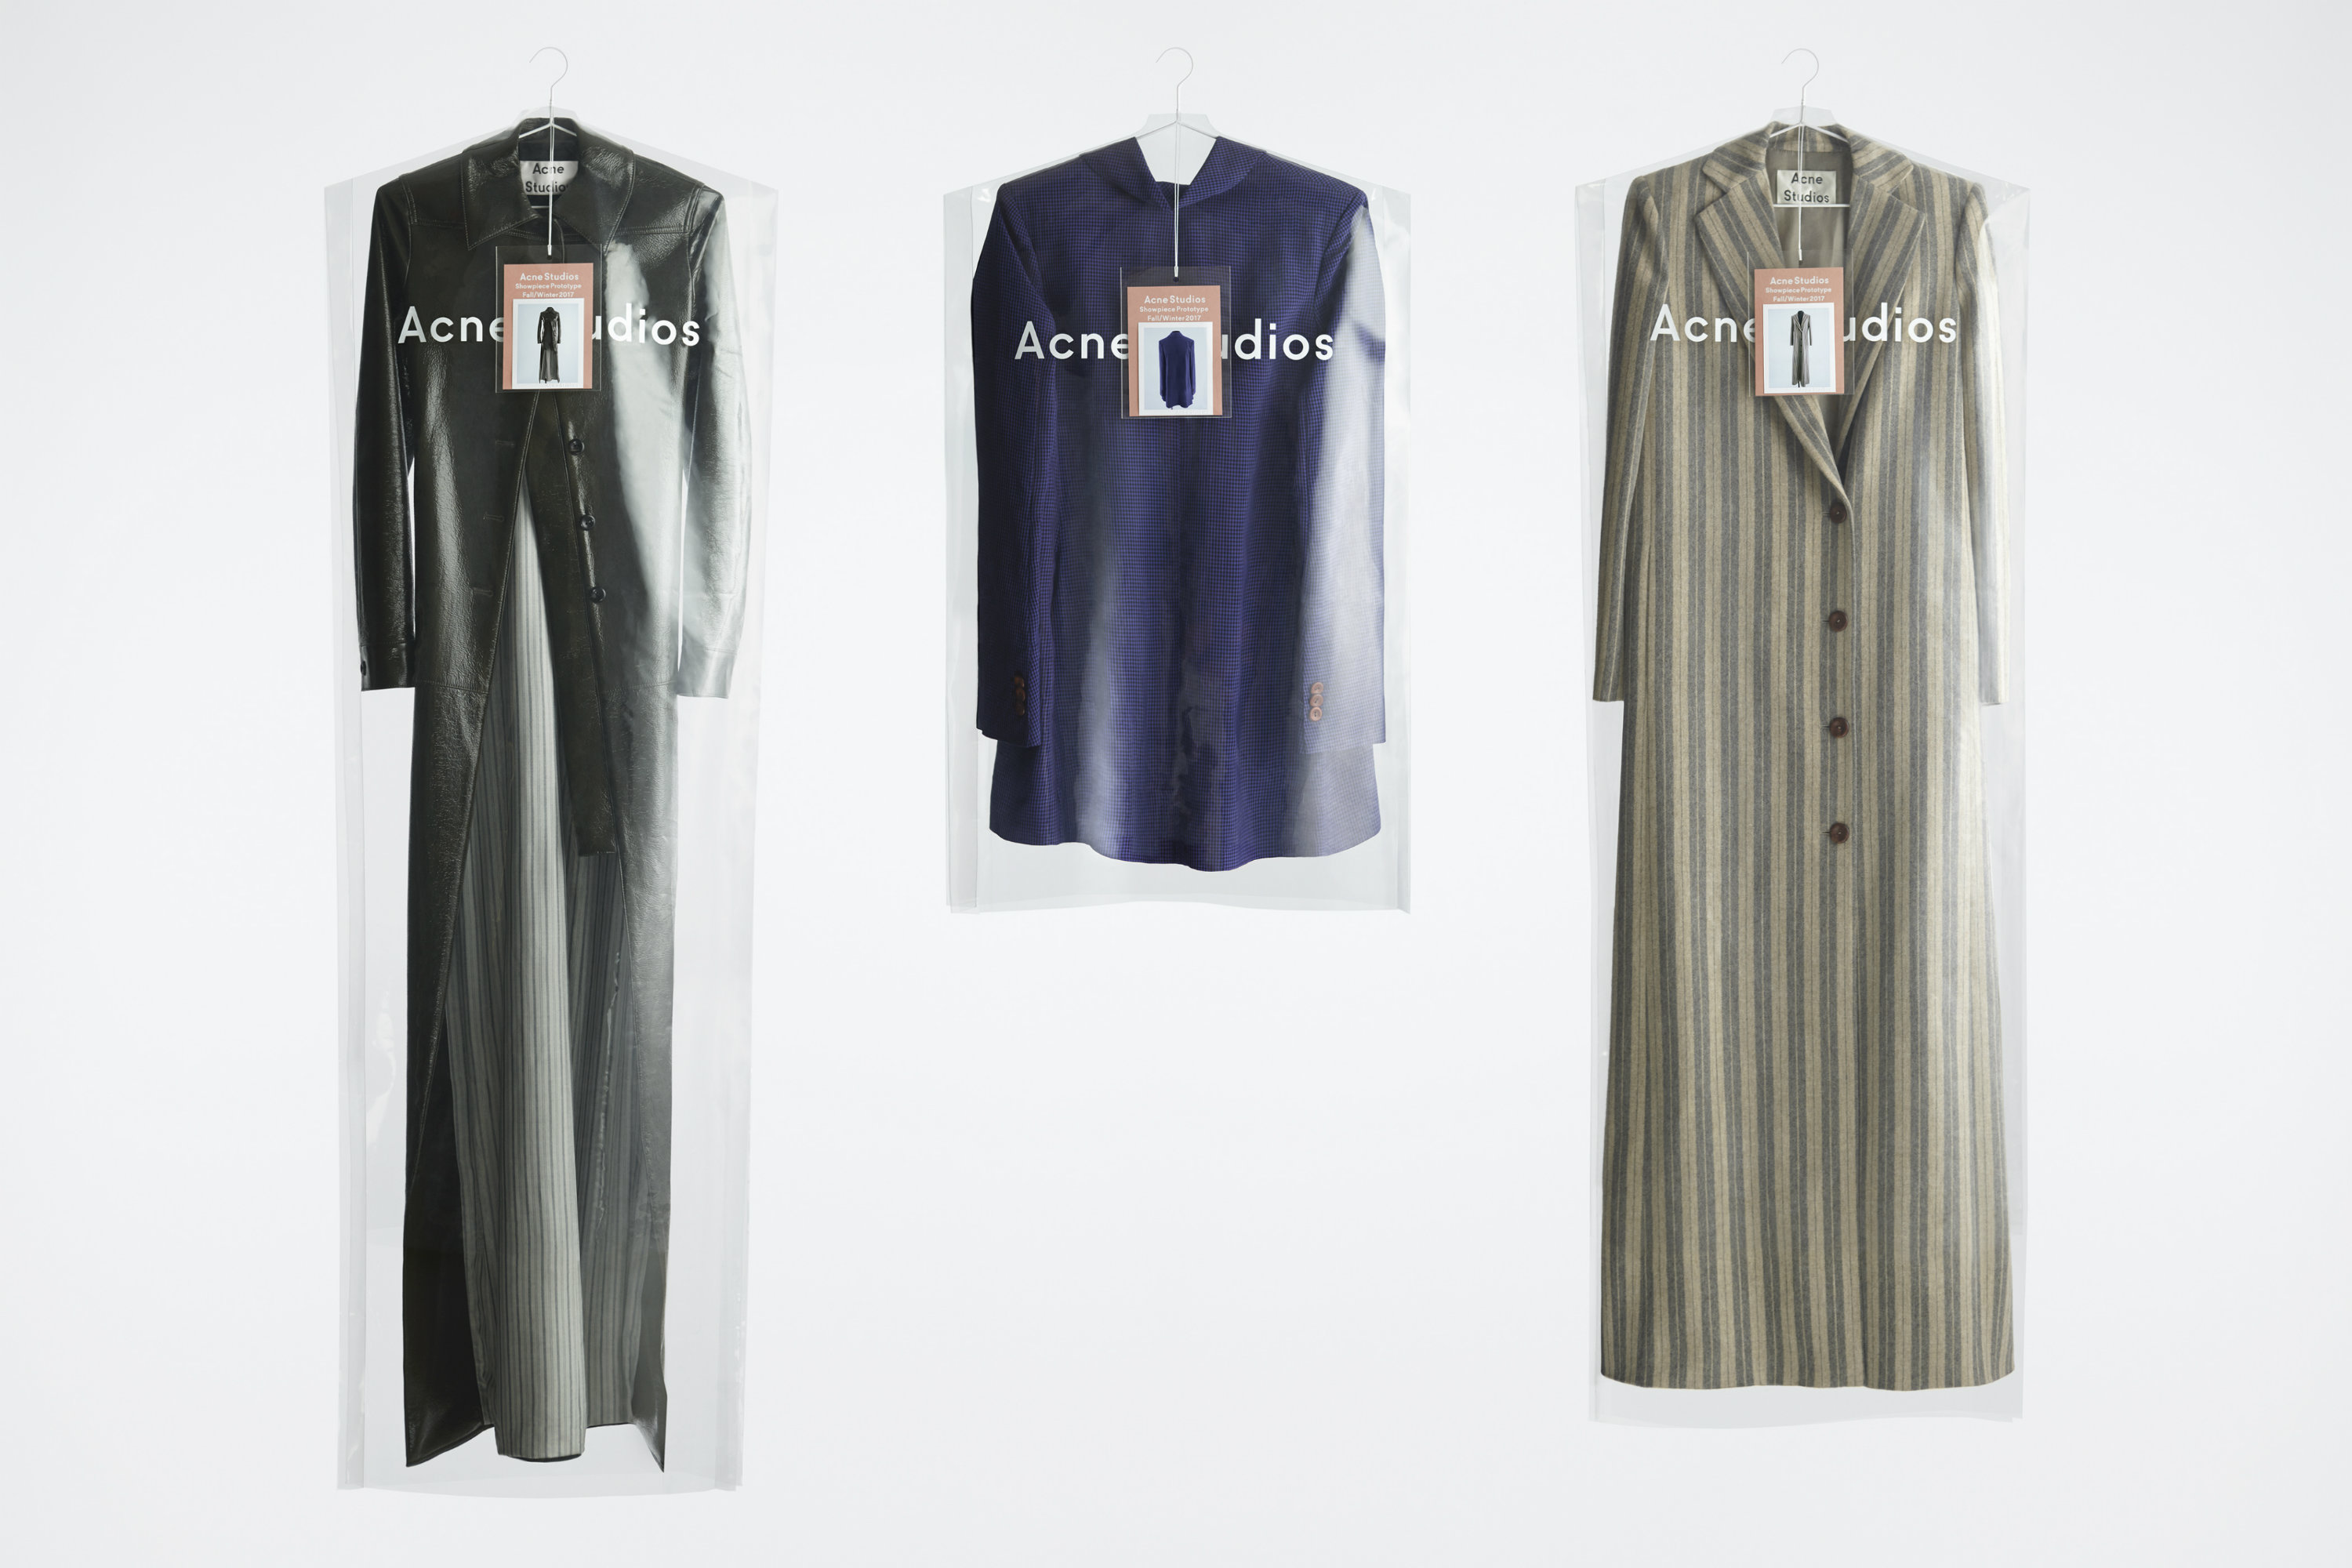 Acne Studios Just Launched a Collector's Item Capsule for All You Mad Fashion Fans